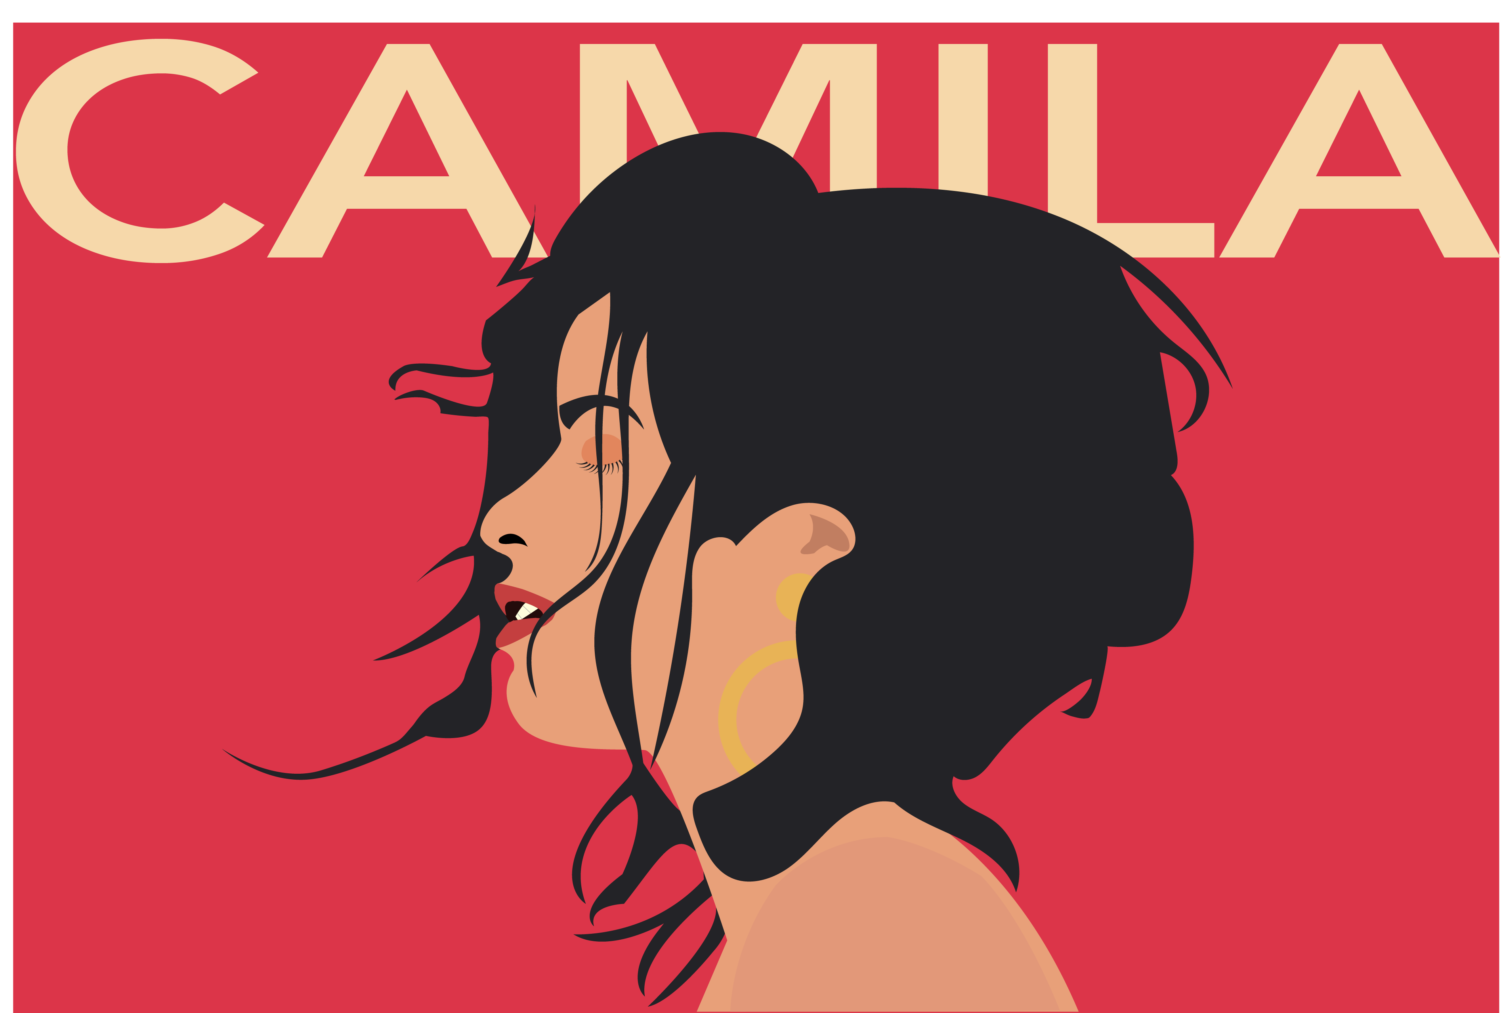 Camila Cabello dropped her debut album, 'Camila' on Friday. Within 24 hours, the album topped the iTunes album charts in 100 countries, breaking the record for most No. 1 positions by a female artist's debut.